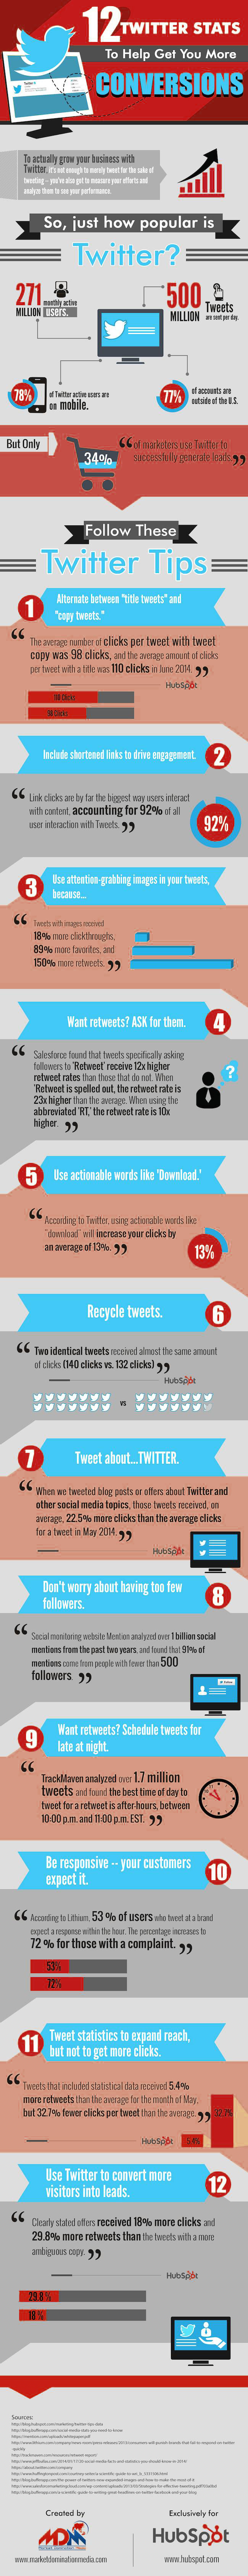 12 Twitter STATS which Help for more conversions